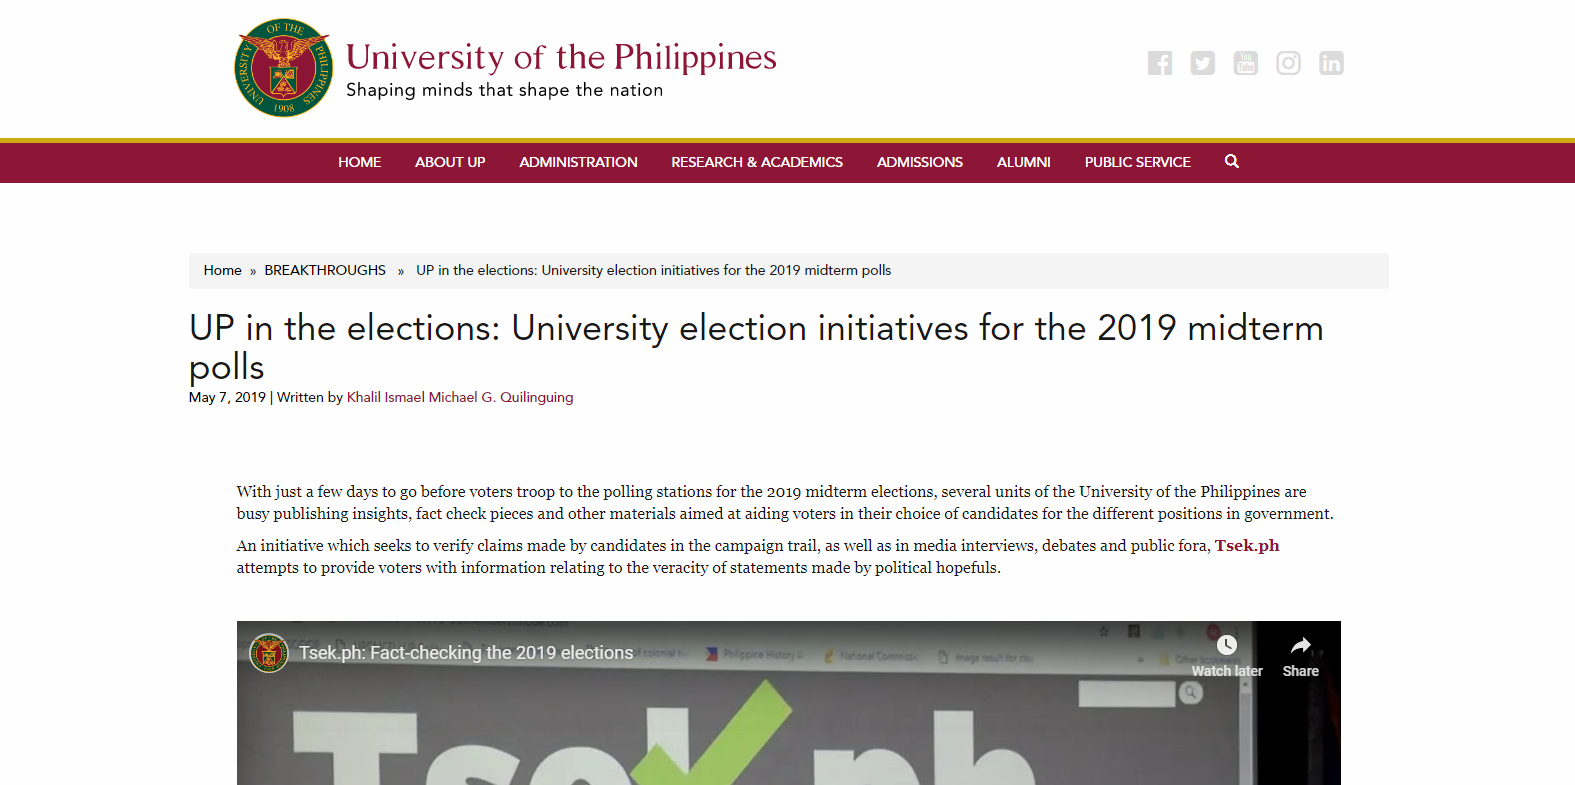 UP in the elections: University election initiatives for the 2019 midterm polls